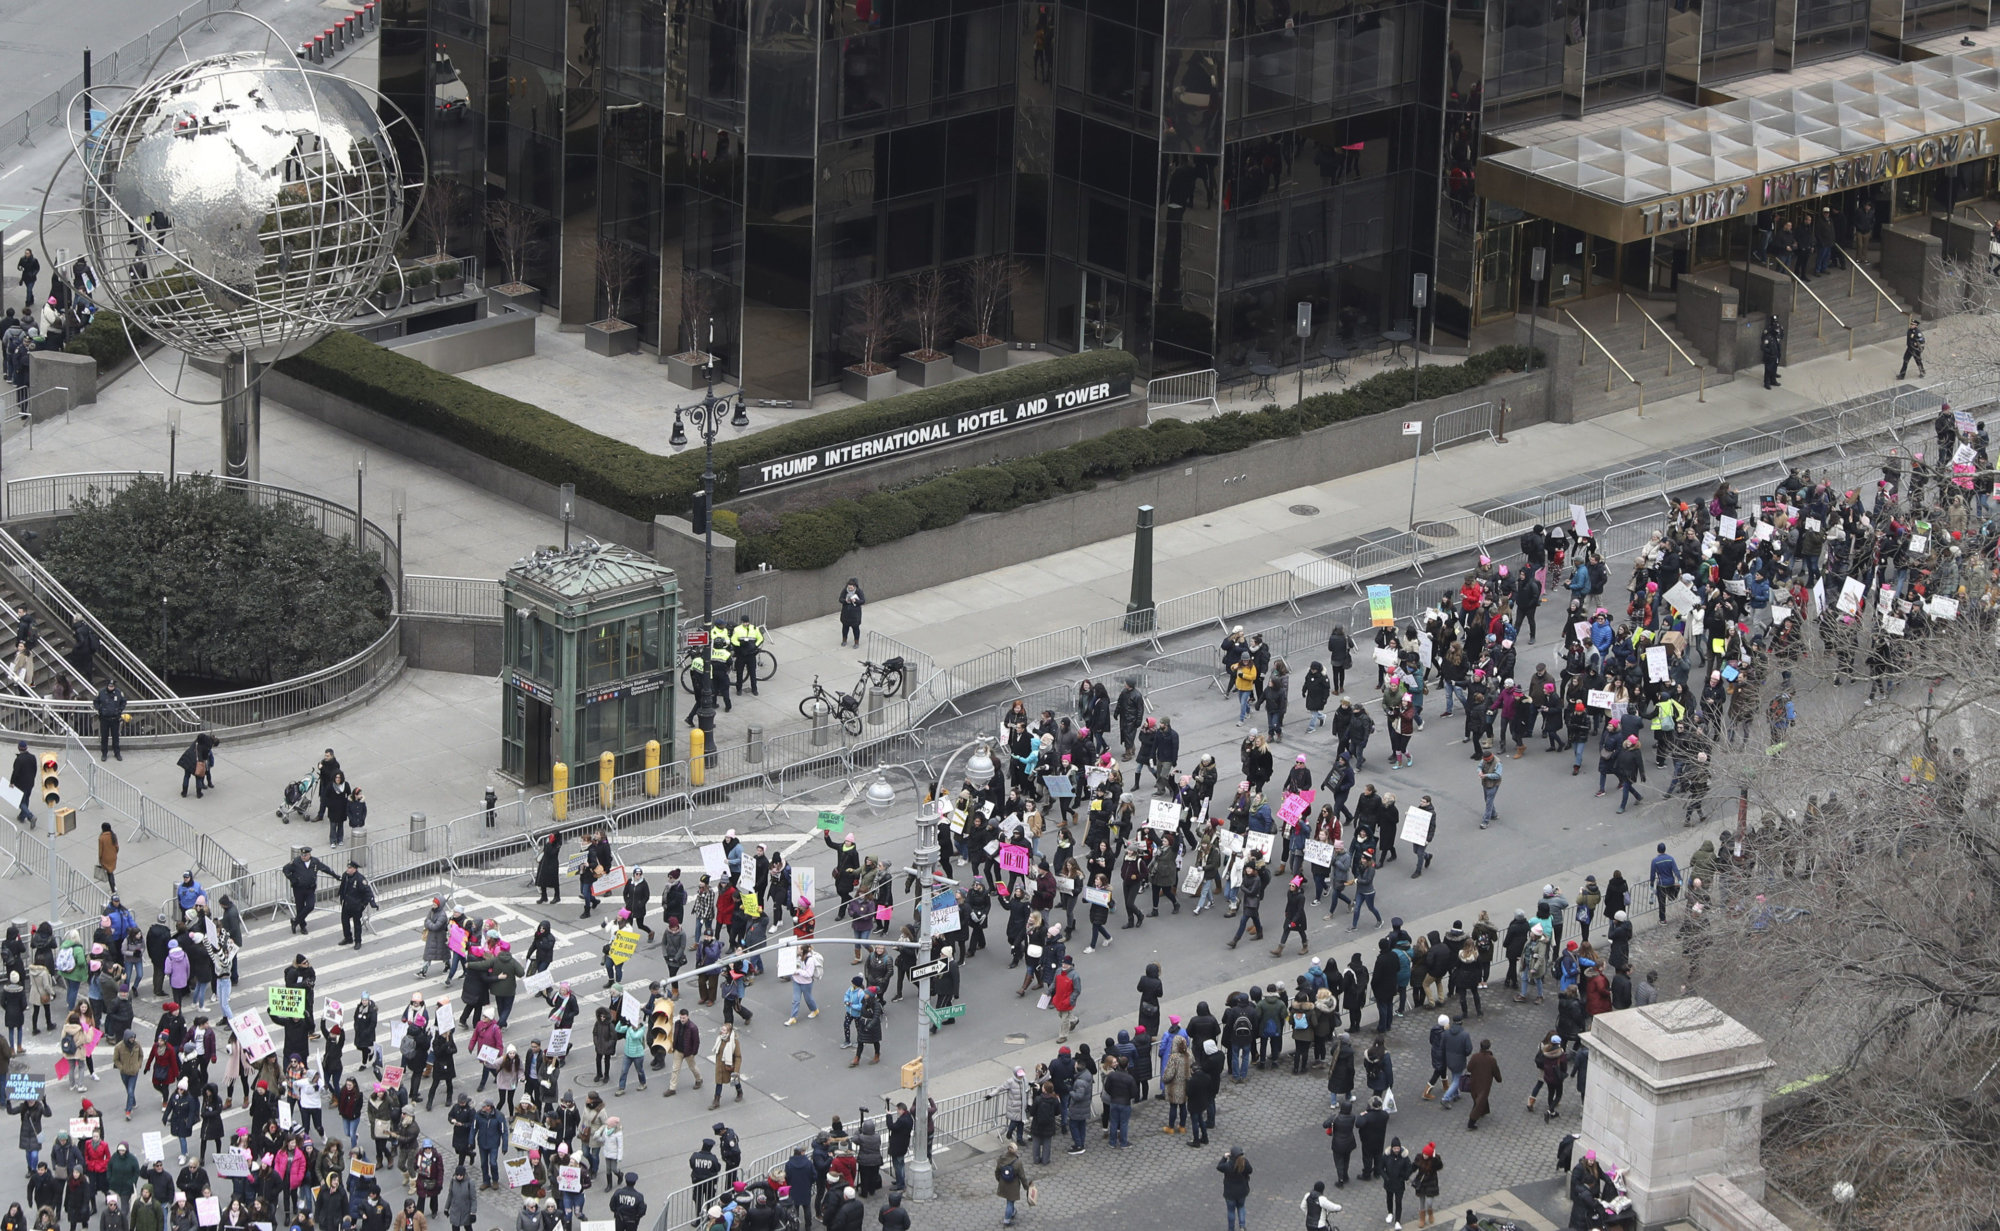 Demonstrators march past the Trump International Hotel and Tower during the Women's March Alliance, Saturday, Jan. 19, 2019, in New York. (AP Photo/Mary Altaffer)